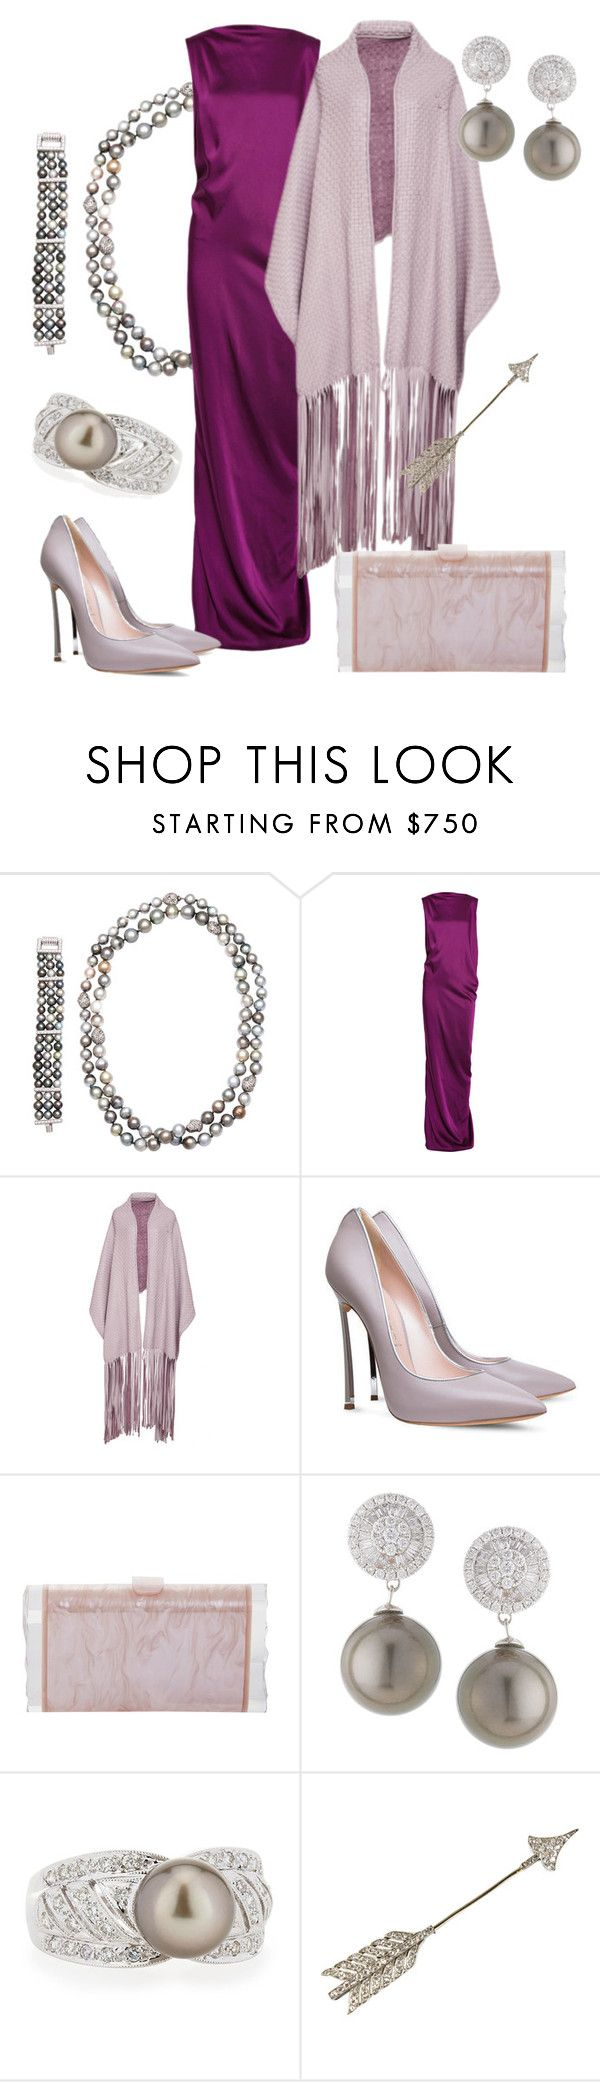 The Queen's Scholarship Gala by queenalex on Polyvore featuring мода, STELLA McCARTNEY, Casadei, Edie Parker, Belpearl and Johanna Ortiz